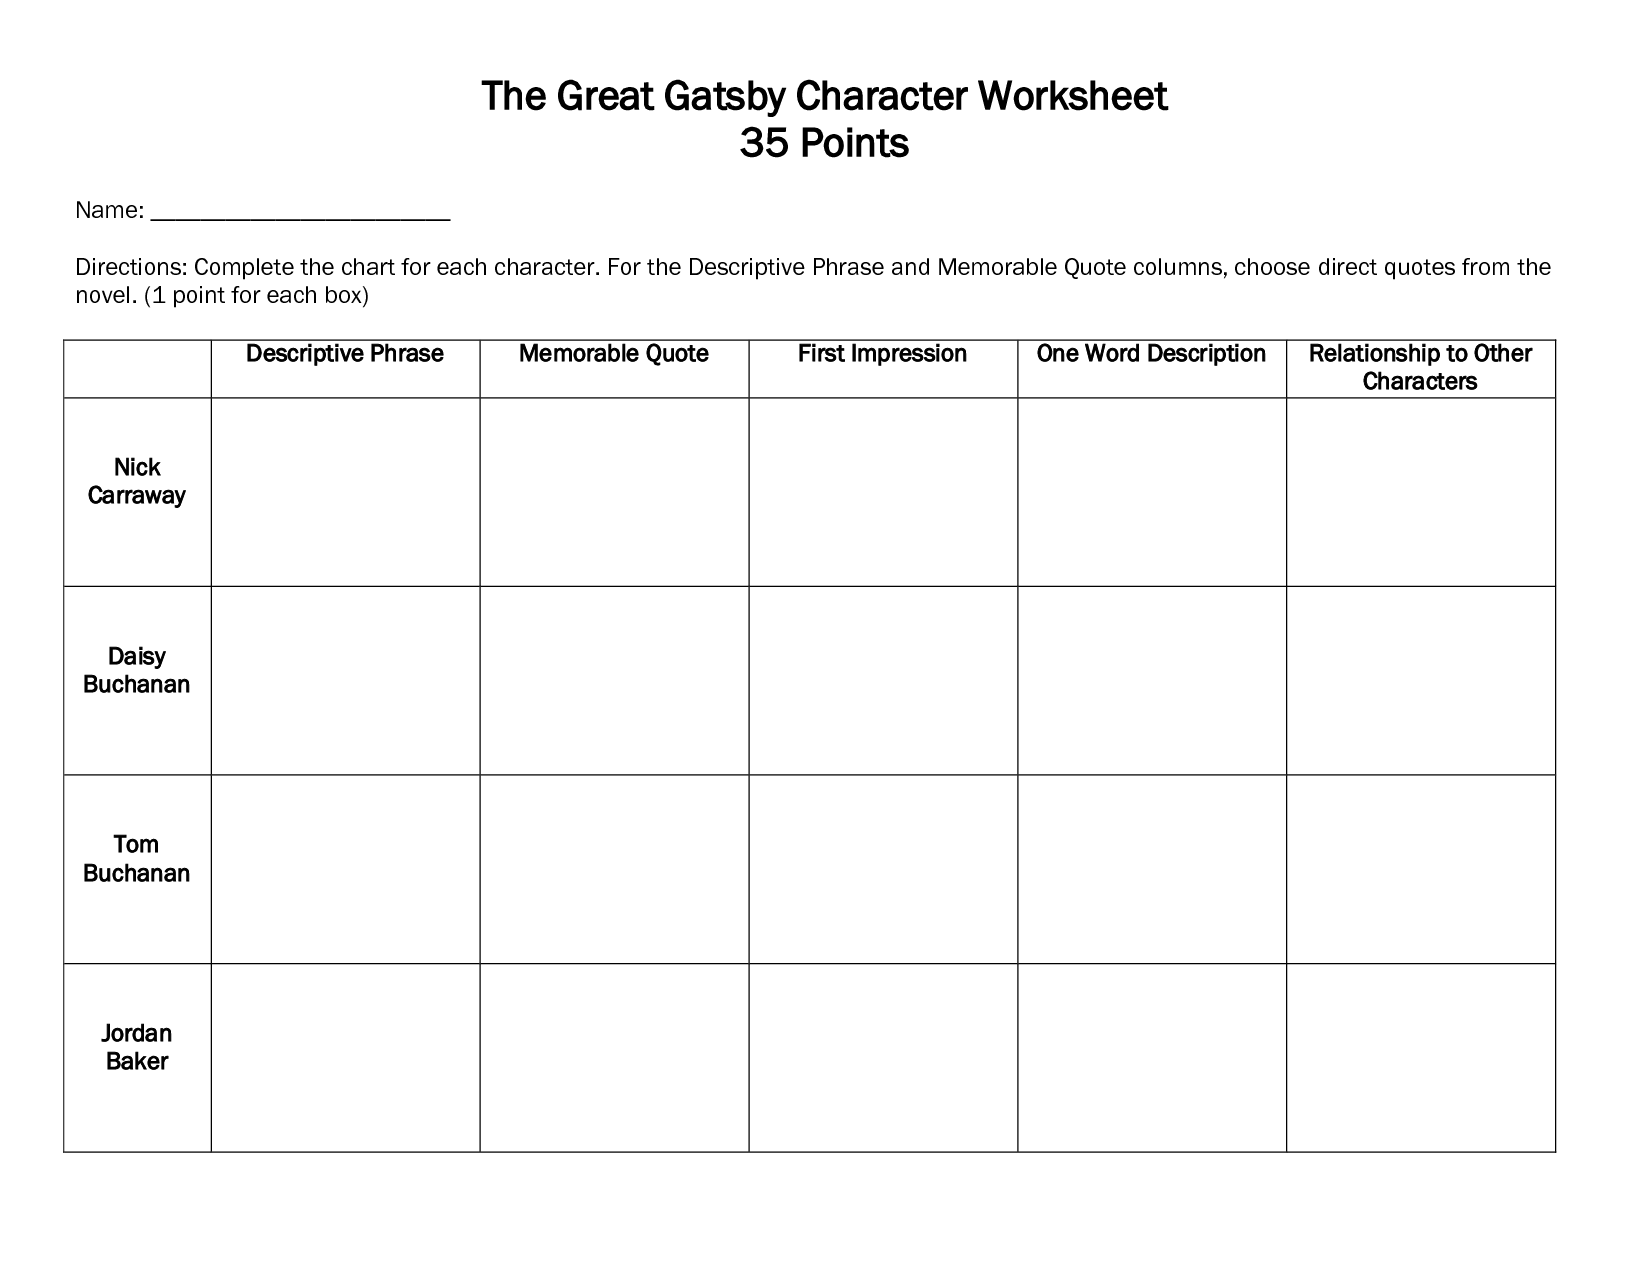 worksheets for great gatsby chapter of the great gatsby worksheets for great gatsby the great gatsby character worksheet 35 points directions